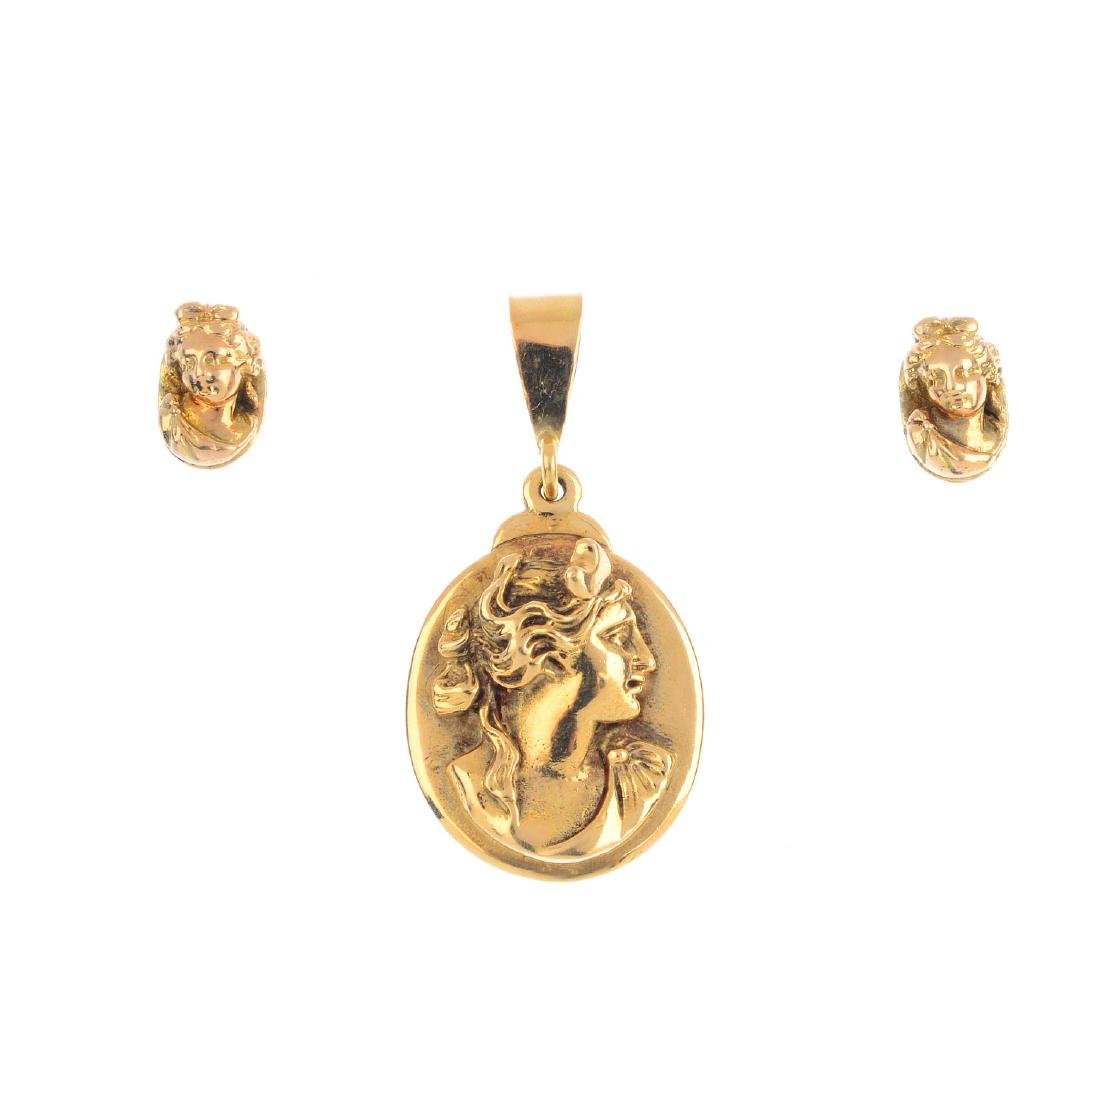 Three items of cameo jewellery. To include a 9ct gold